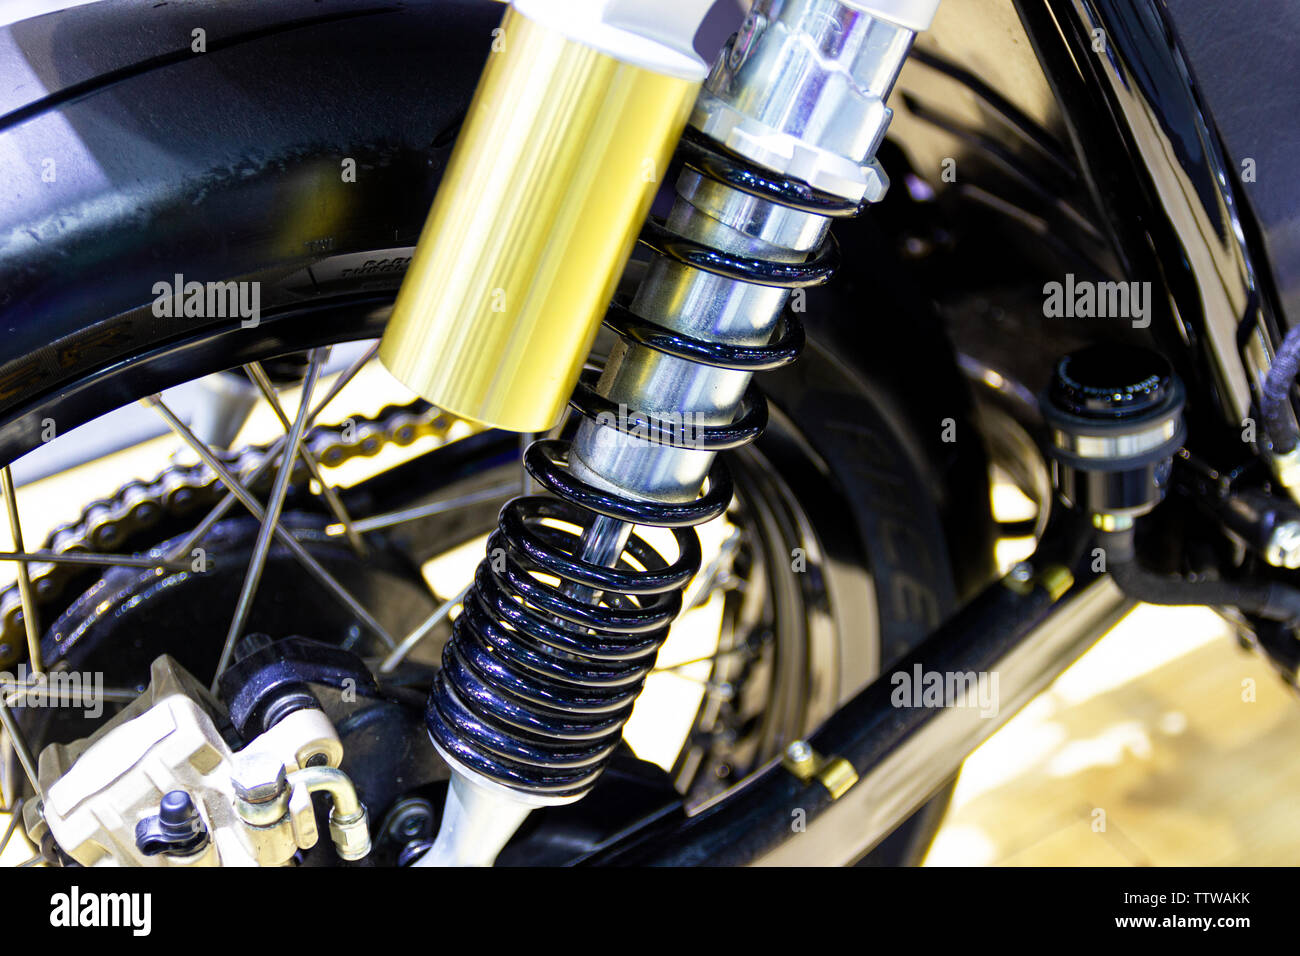 Nonthaburi Thailand:- December 8, 2017: Black Shock Absorbers part of Motorcycle is a part for preventing shock new technology Bangkok, Thailand - Stock Image